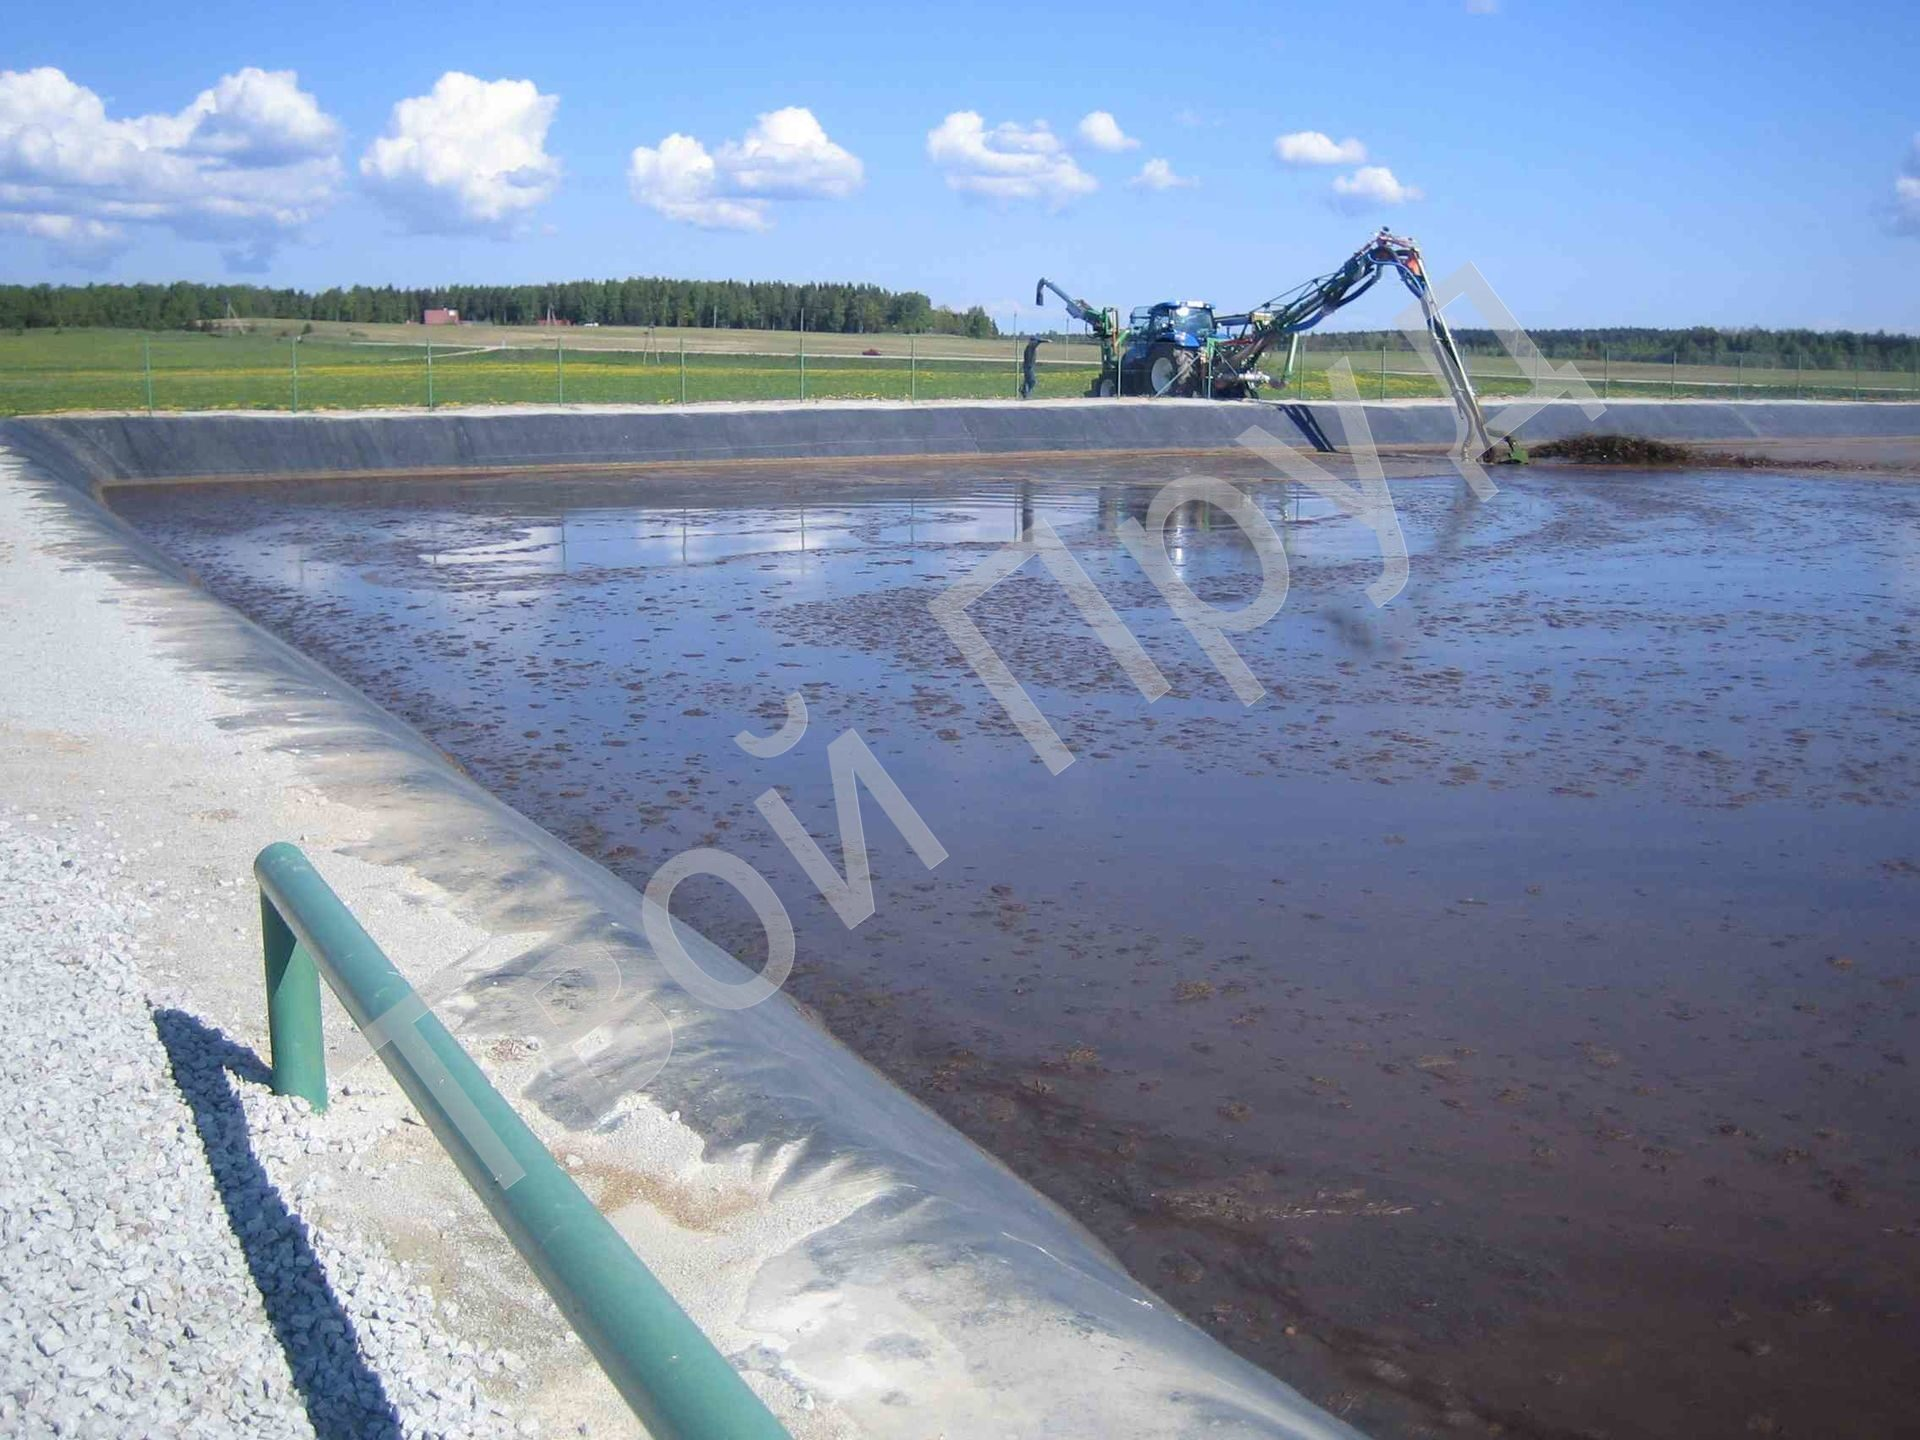 epdm_geo_-_dung_pits_-_estonia_-_hydroseal_-_animal_waste_facility_-_96dpi